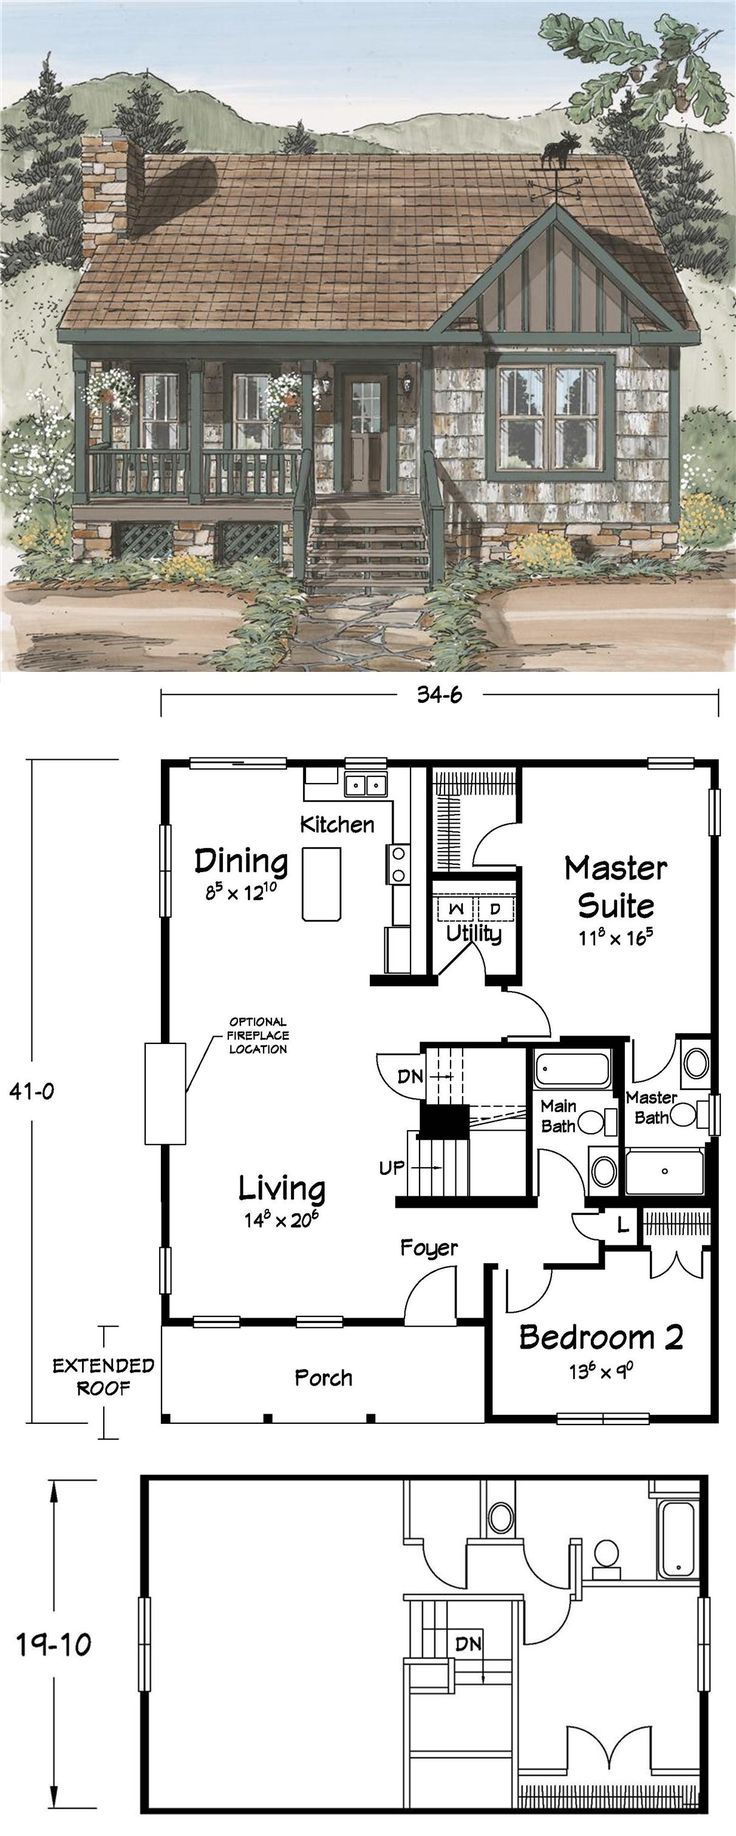 Cute floor plans tiny homes pinterest cabin small for Cottage blueprints and plans